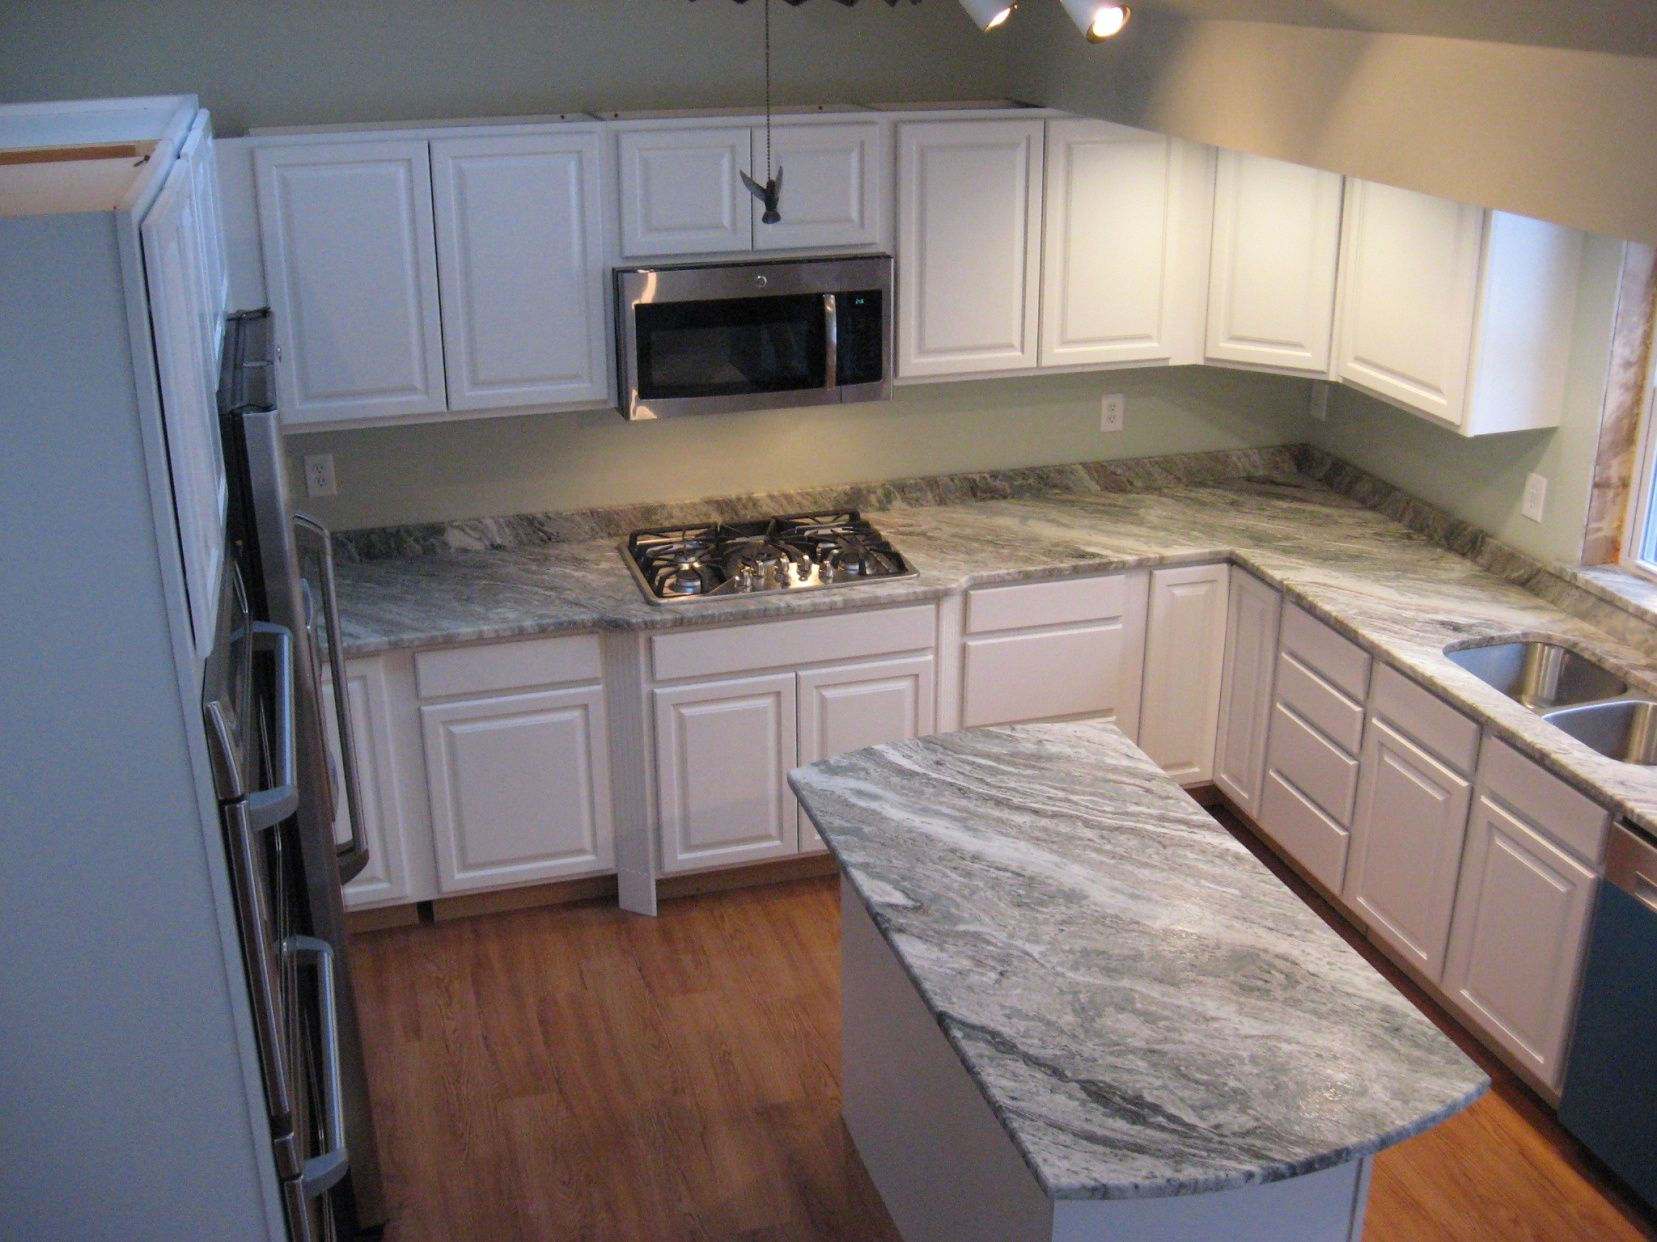 farmhouse best kitchens kitchen vyara countertops a granite maine hanging country on morningstar by pinterest gold countertop pots morningstartile over images